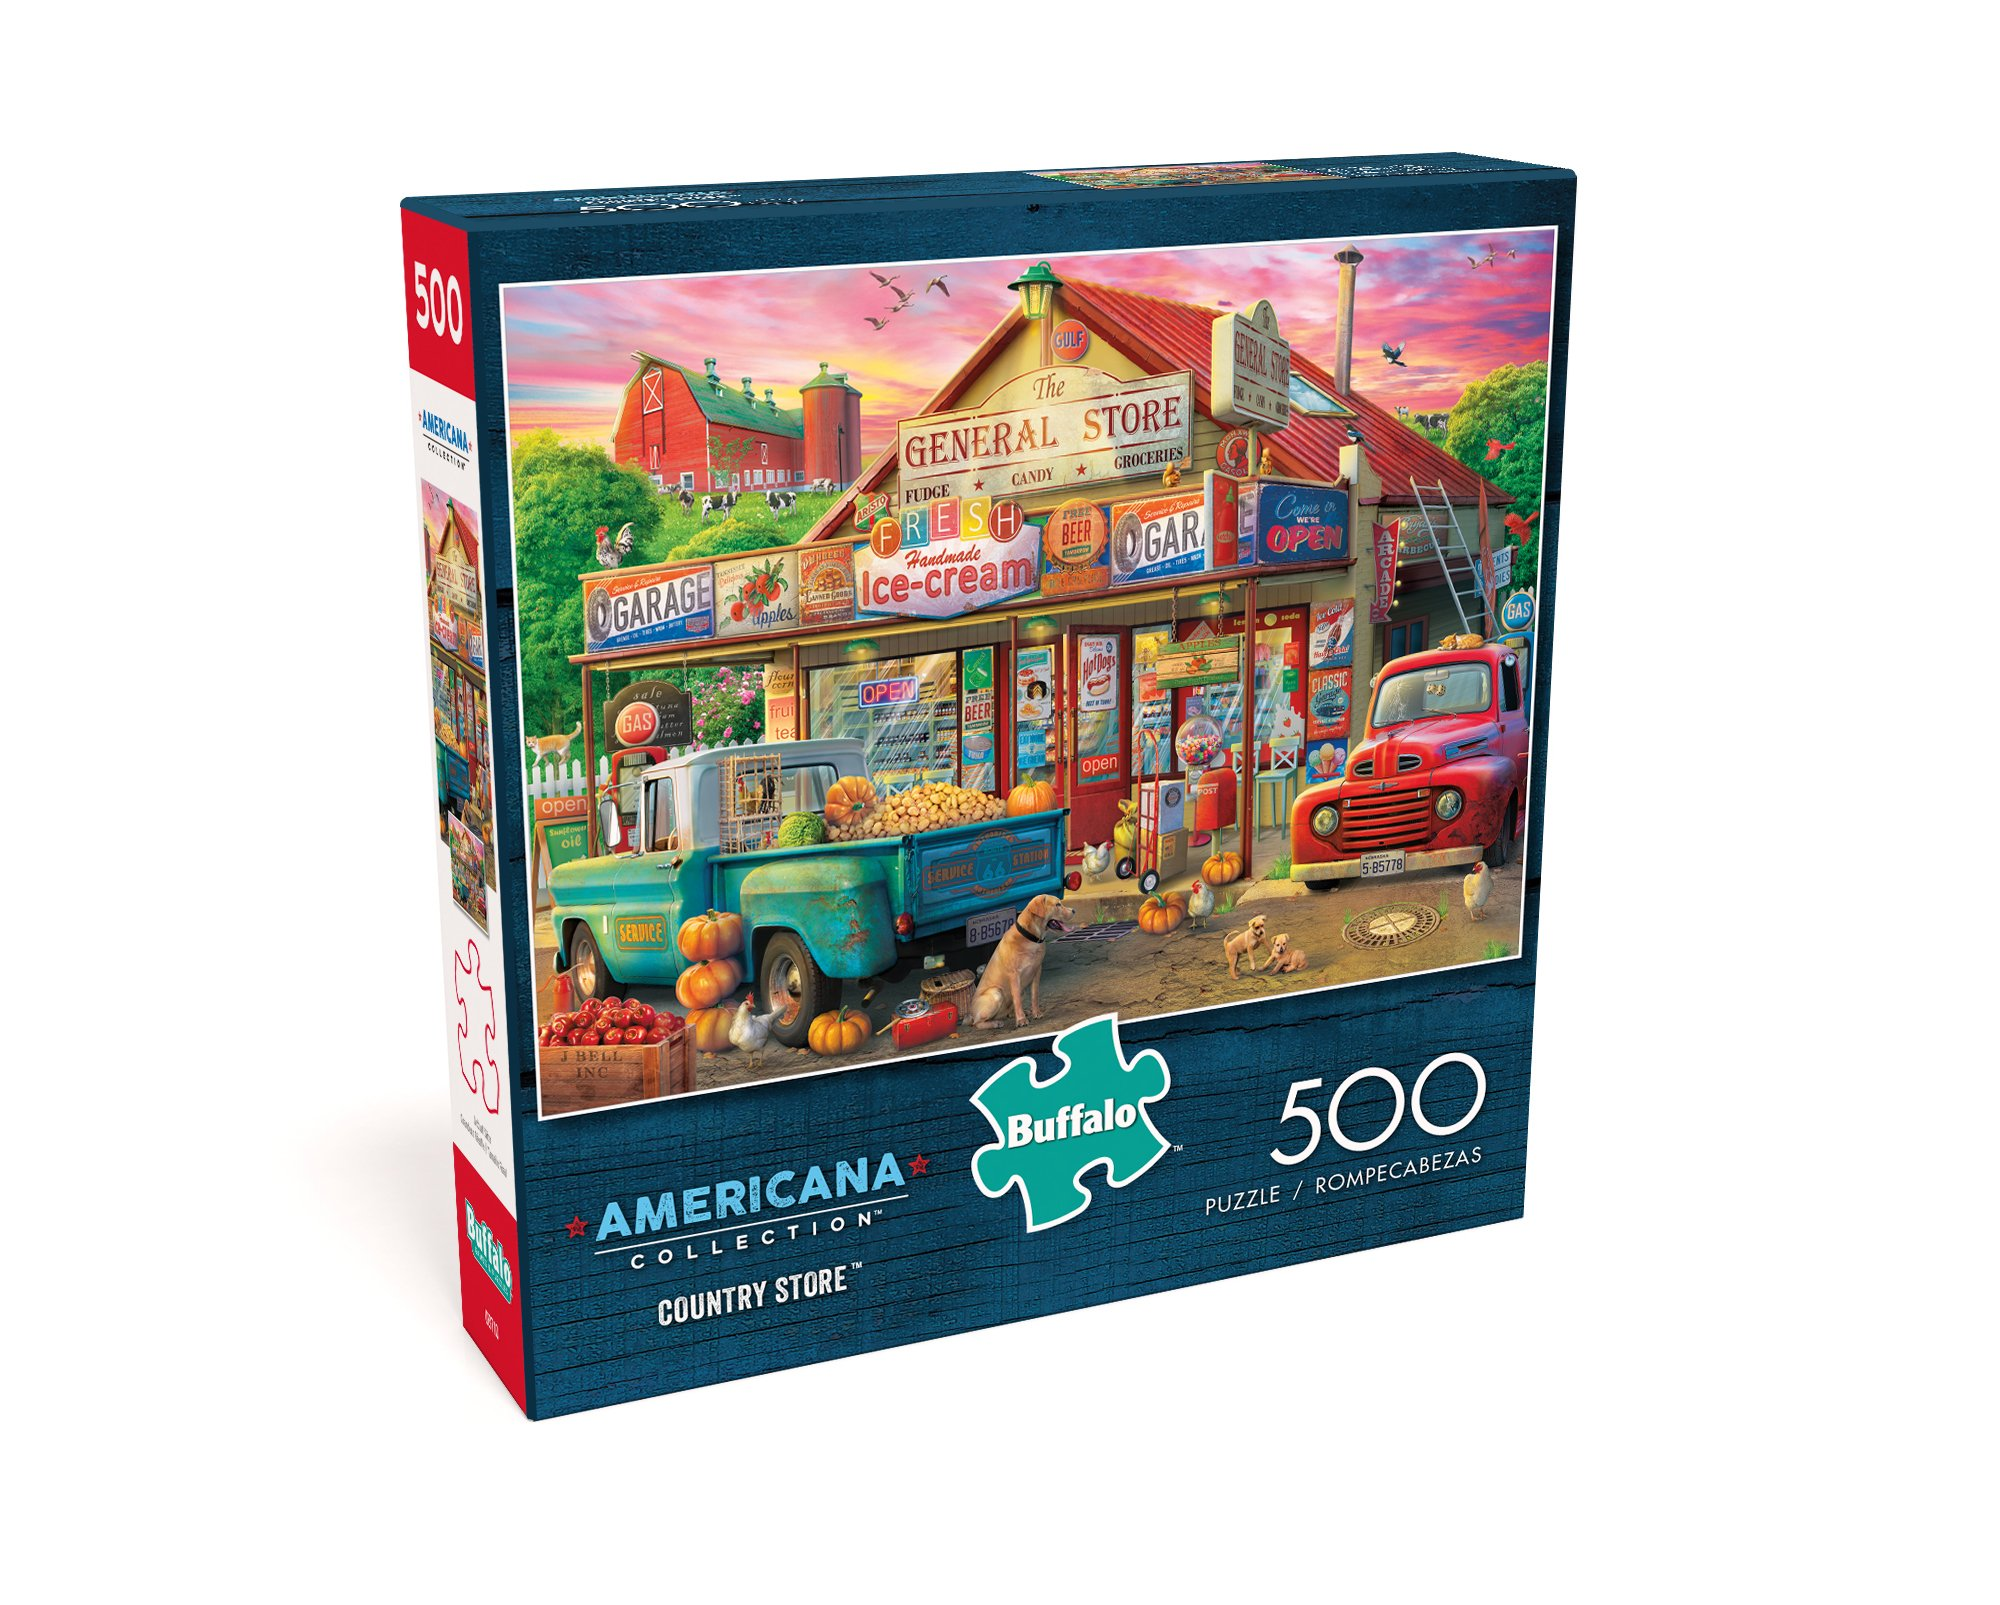 Buffalo Games - Americana Collection - Country Store - 500 Piece Jigsaw Puzzle by Buffalo Games (Image #3)